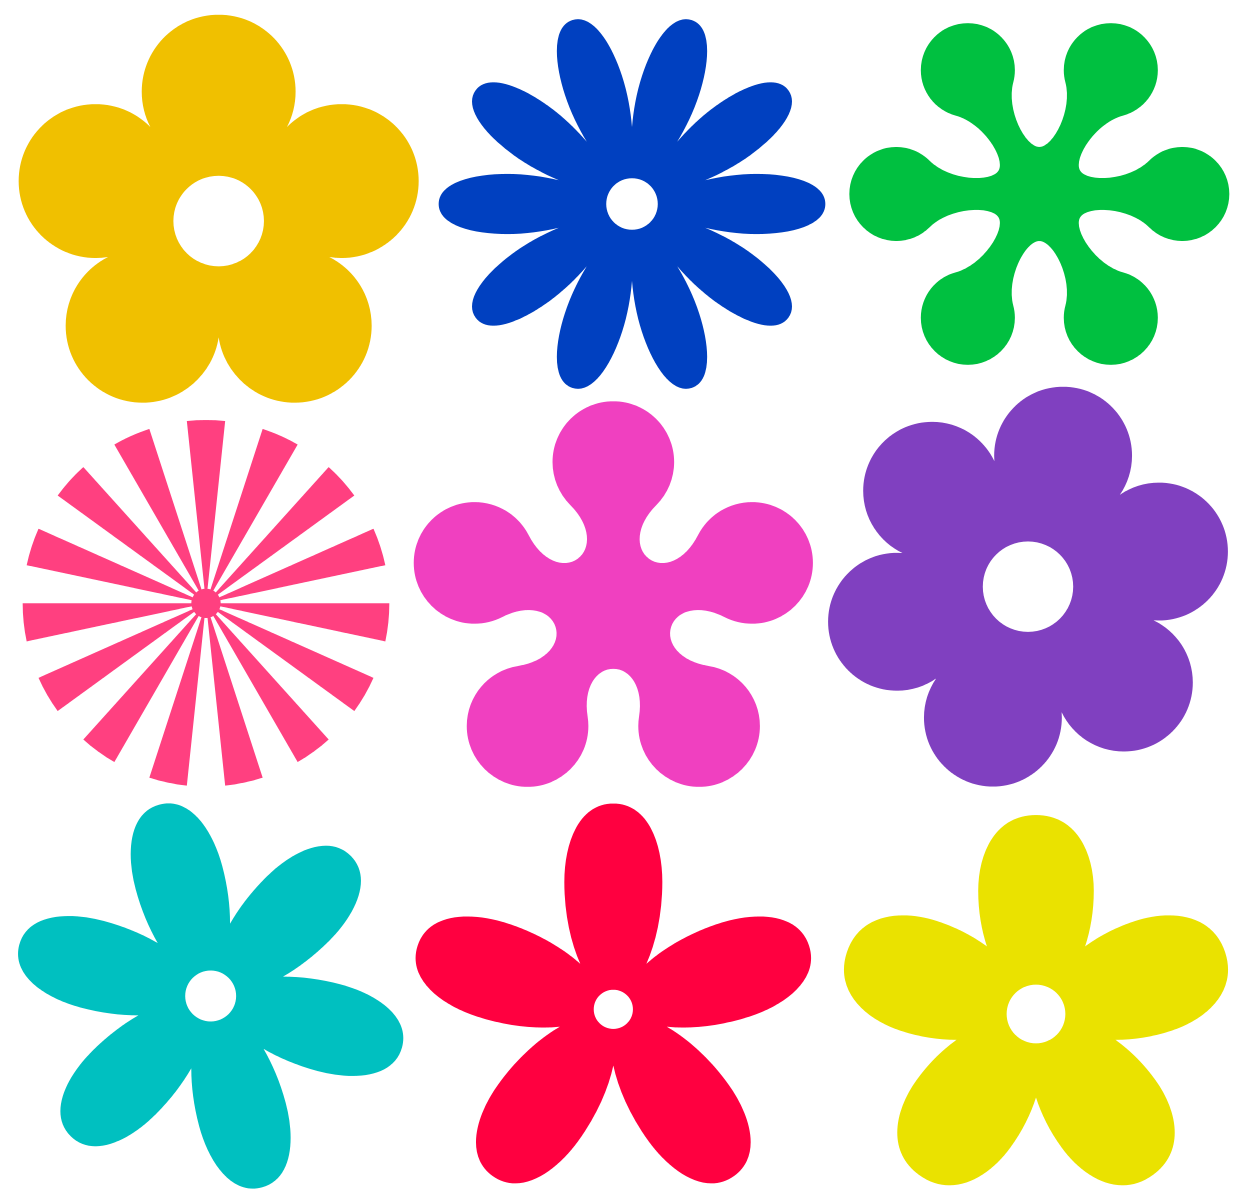 Hippies daisy free on. Hippie clipart nihilism